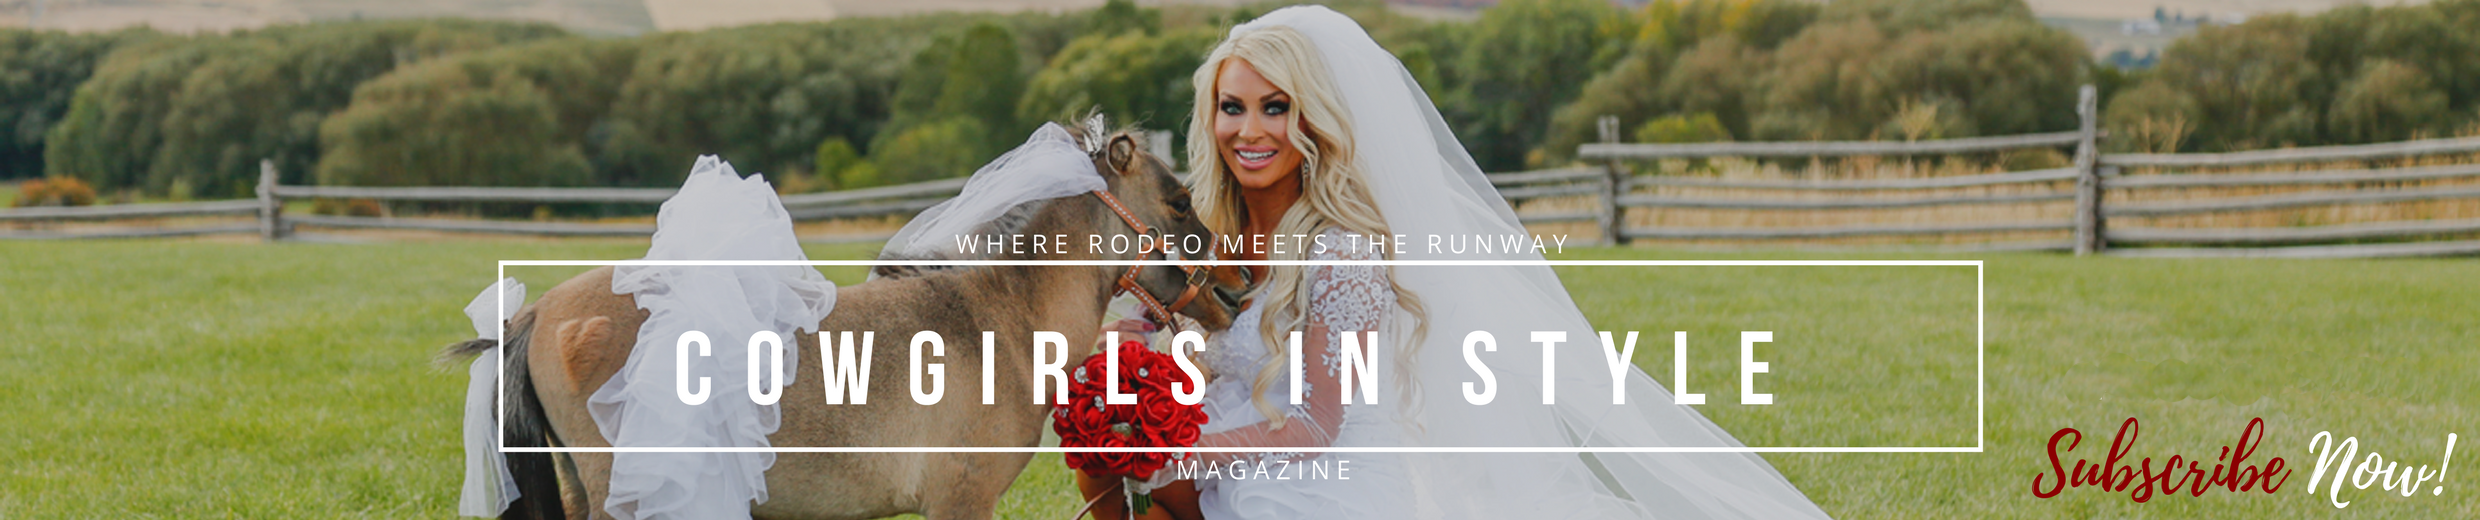 CIS Fall 2019 Issue - Cowgirls In Style Magazine